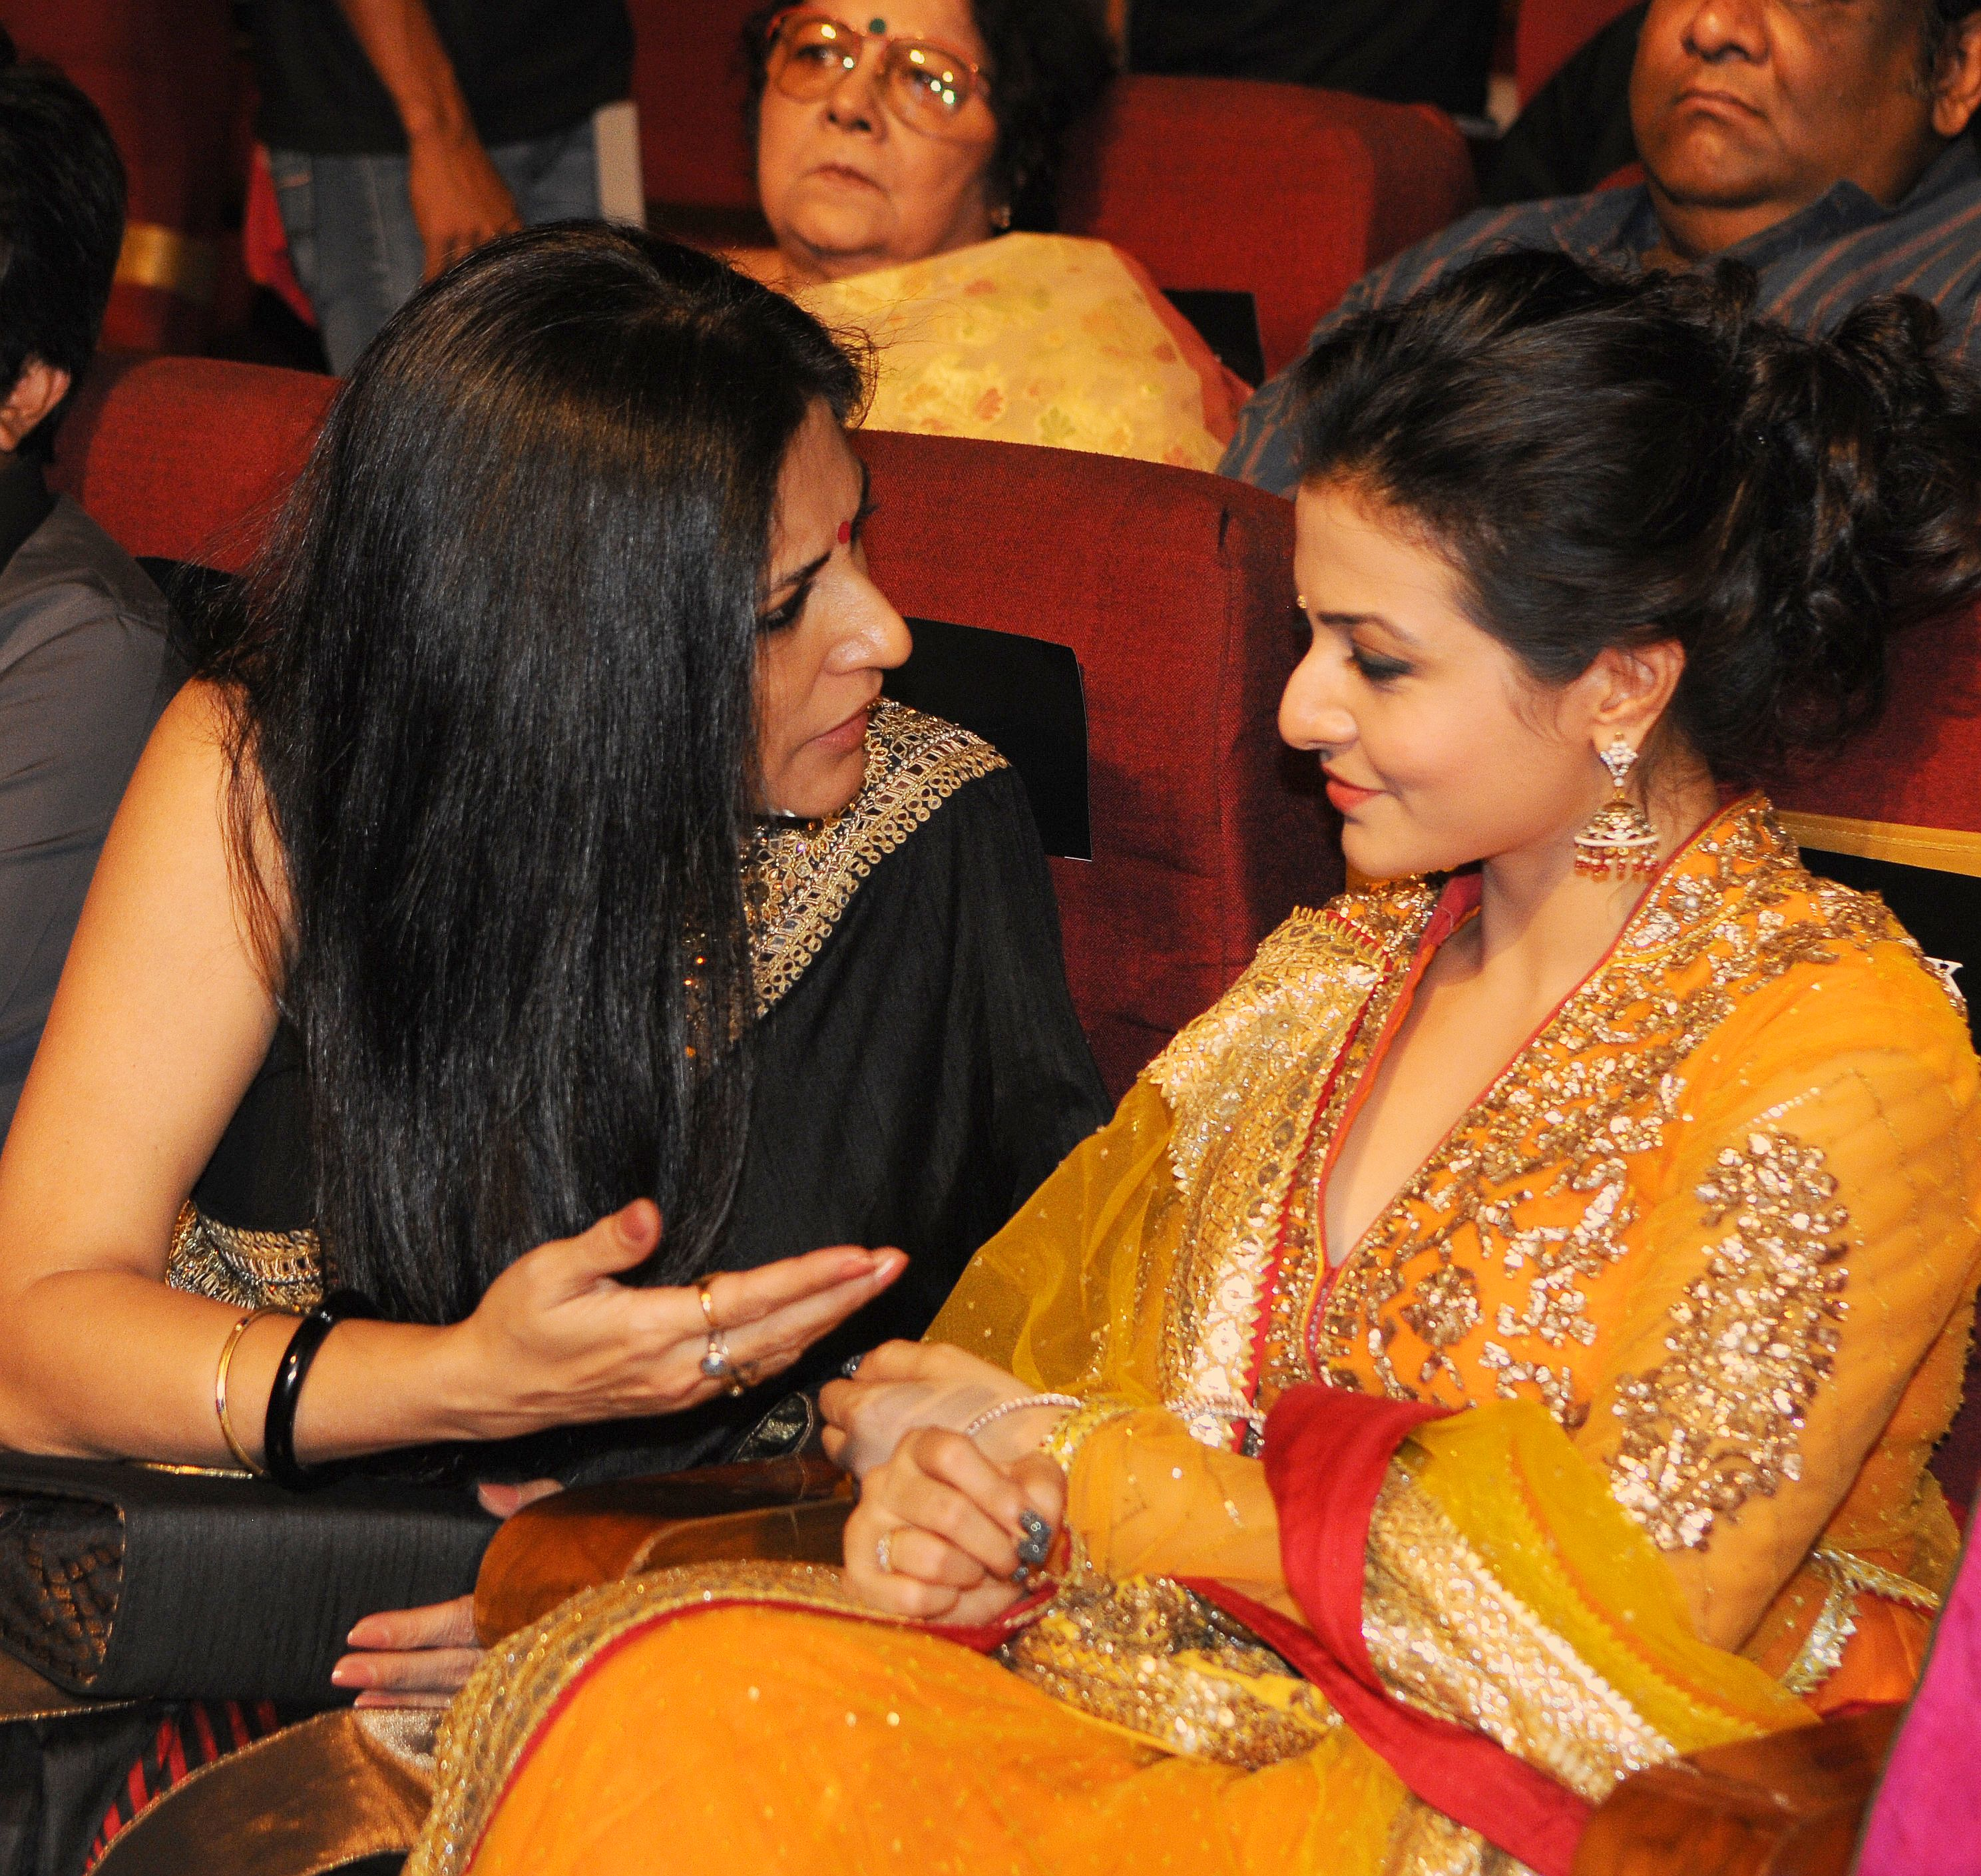 Rupa Ganguly with Koel Mullick (R) during 1st Vivel Filmfare Awards 2013 (East) at Science City auditorium in Kolkata